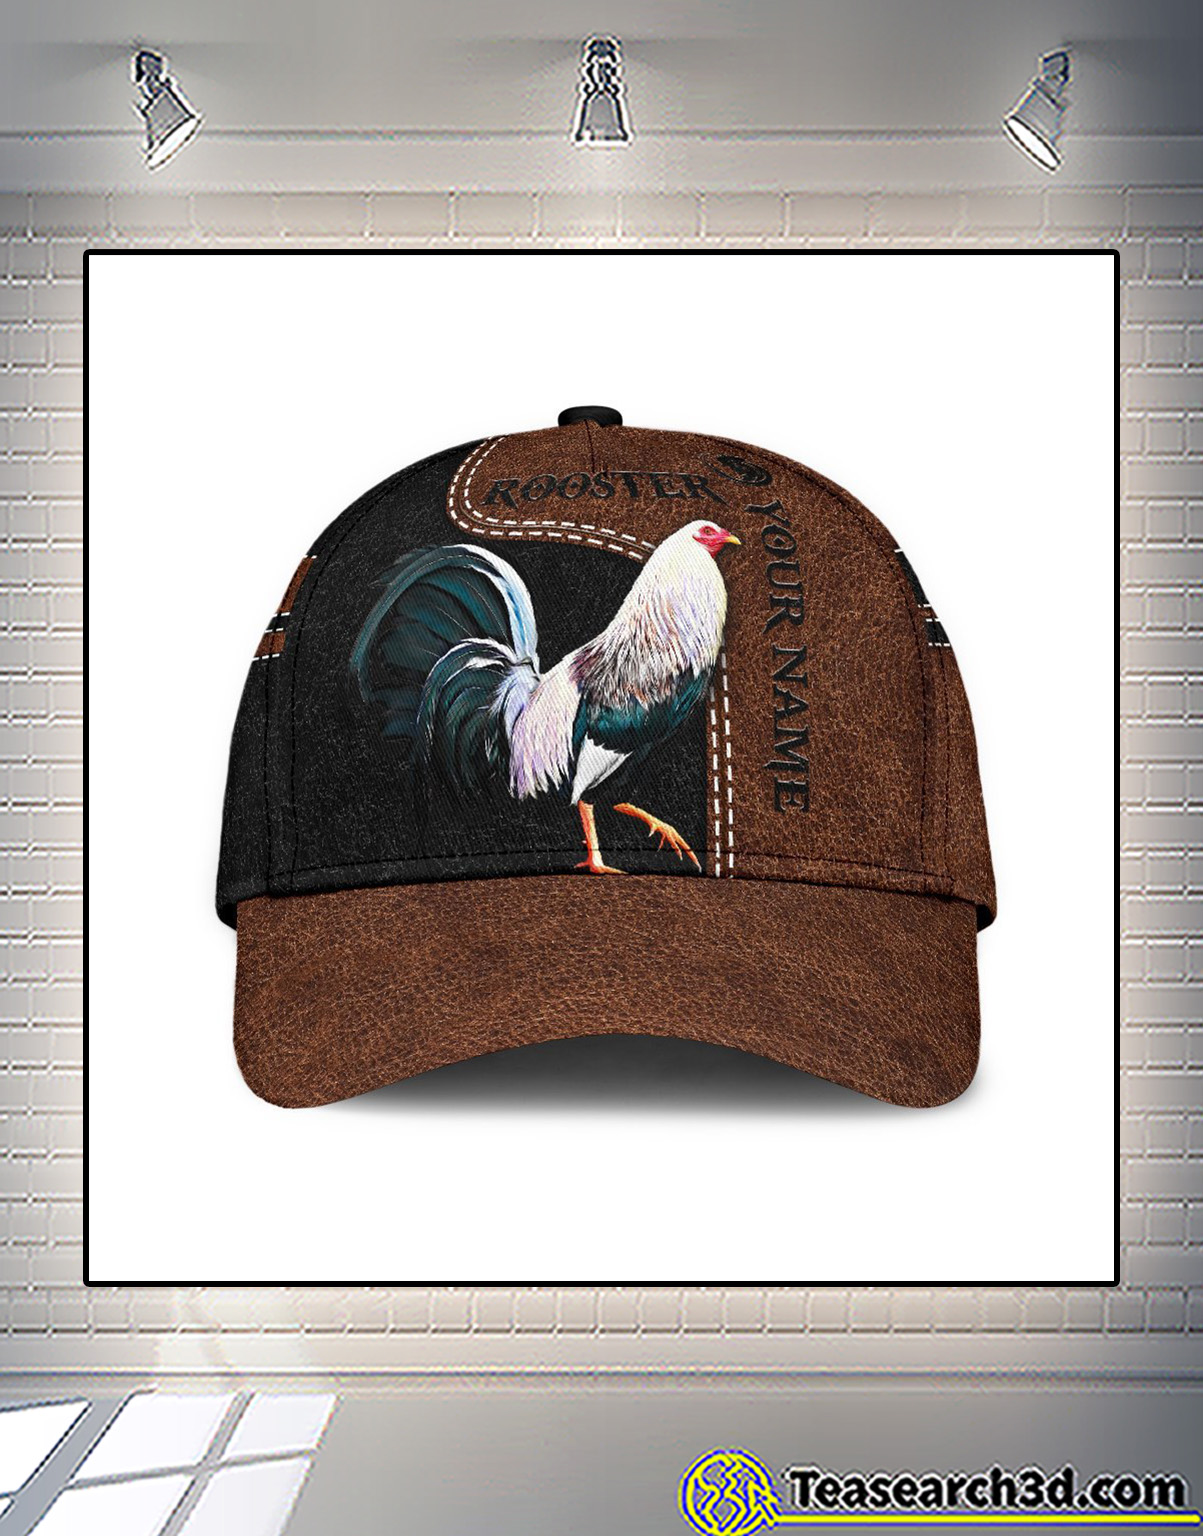 Personalized custom name rooster 3D printed classic cap